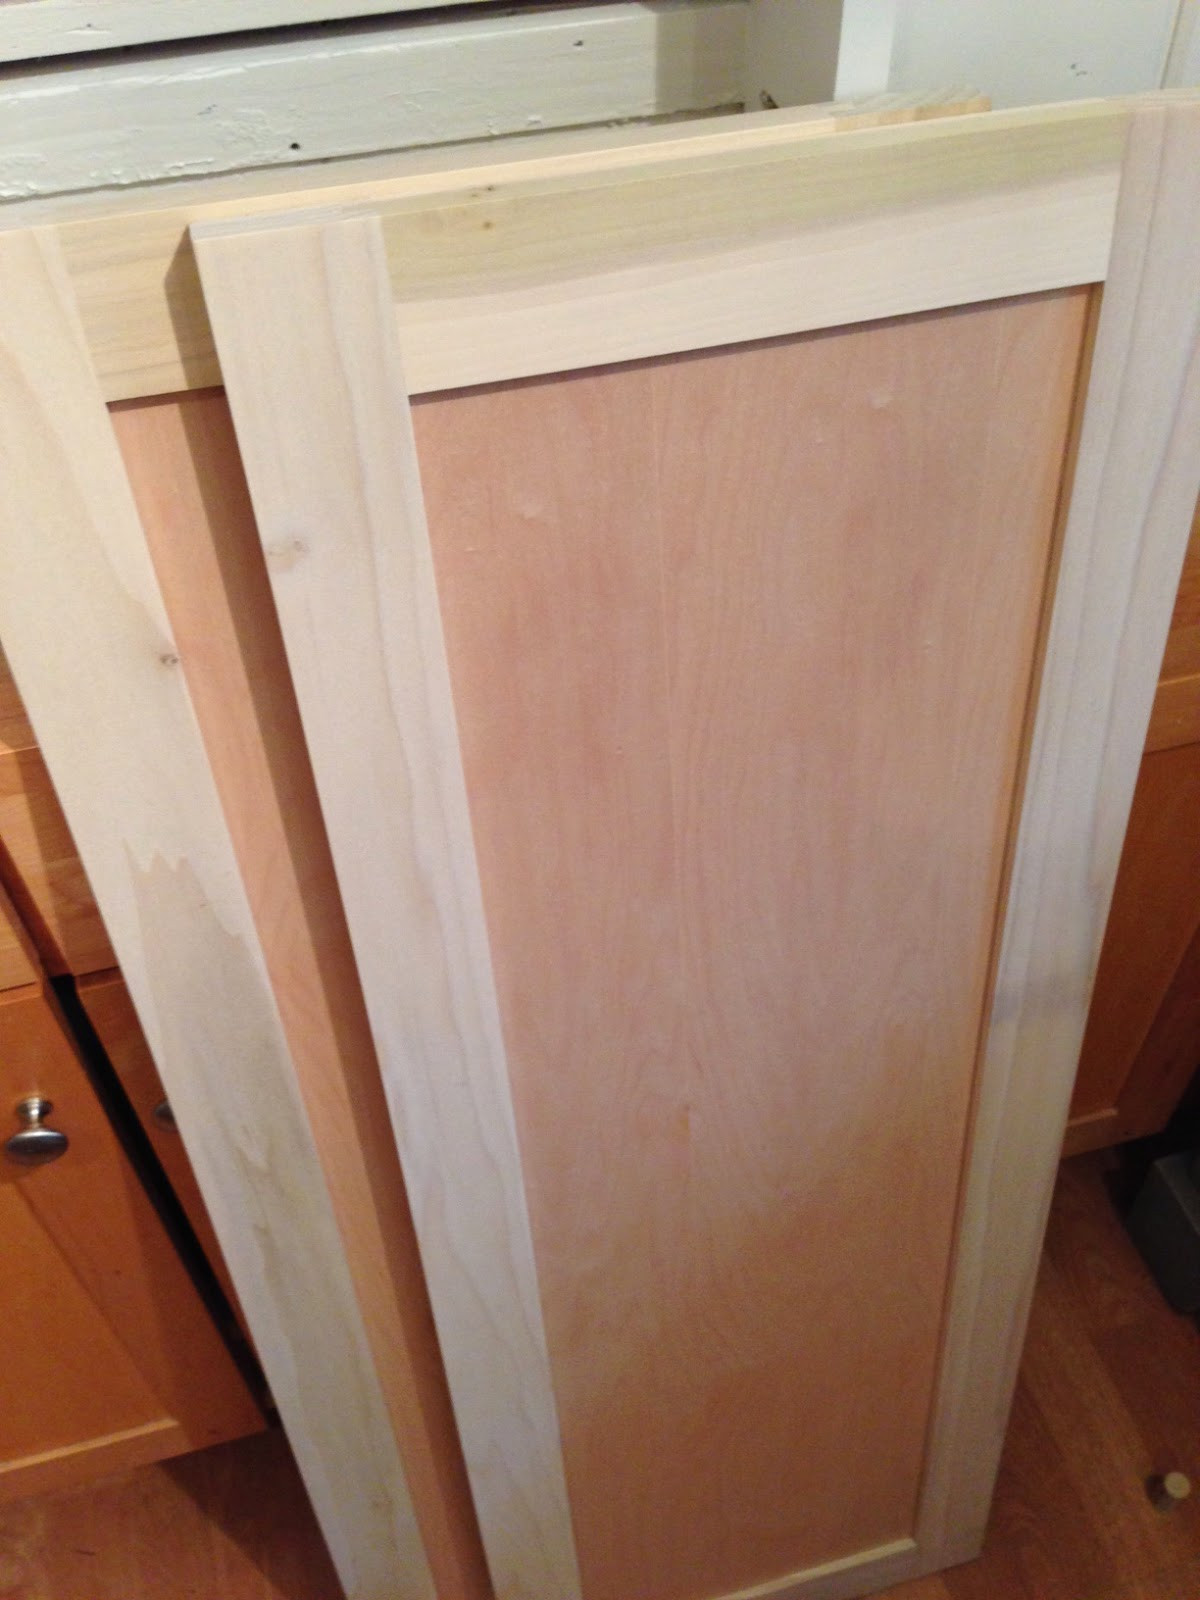 Best ideas about DIY Cabinet Doors . Save or Pin blue roof cabin DIY Pantry Cabinet Using Custom Cabinet Doors Now.